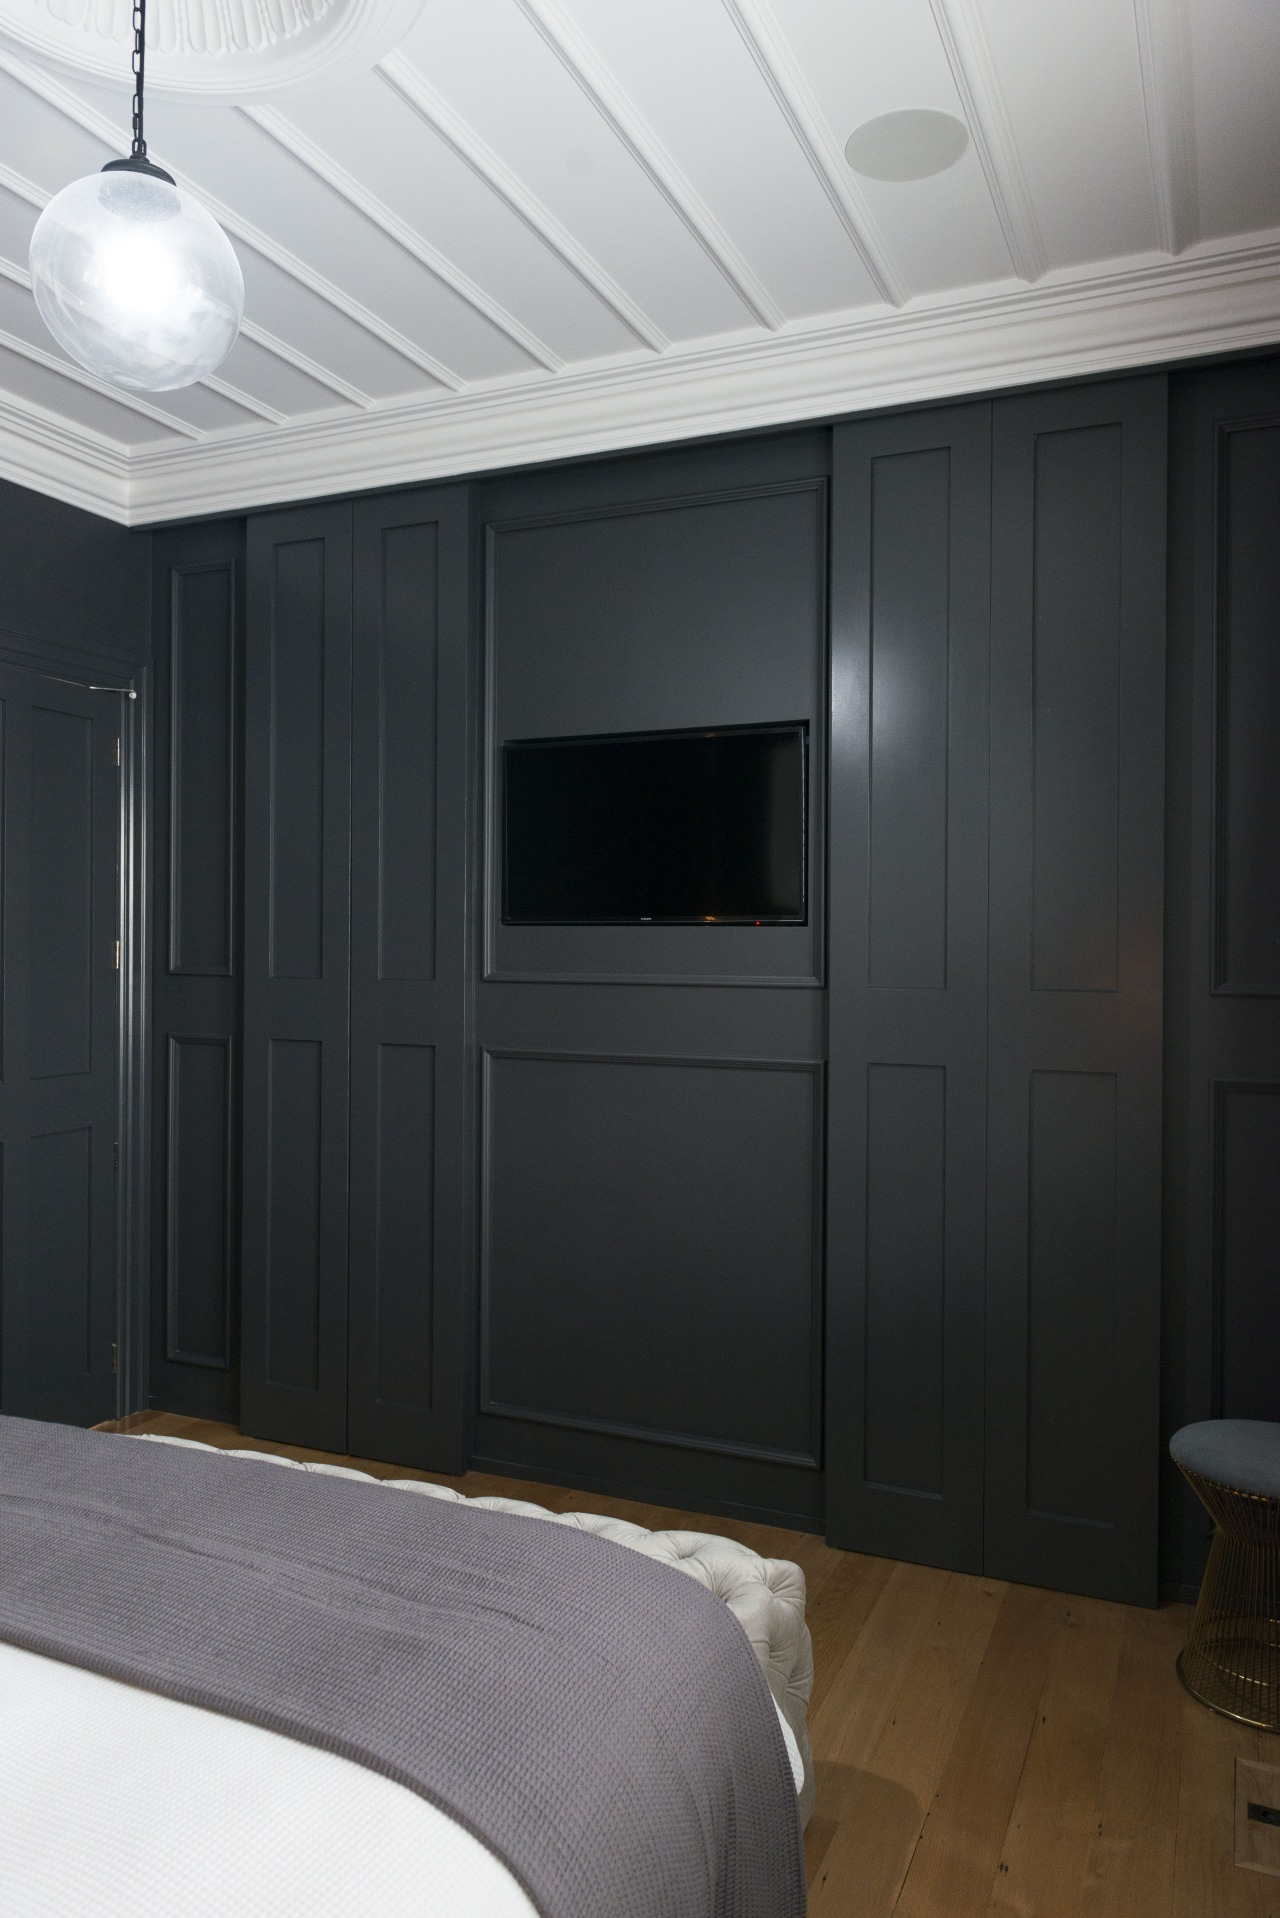 Open sesame dark grey wall panelling disguises the ceiling, door, furniture, interior design, wall, wardrobe, black